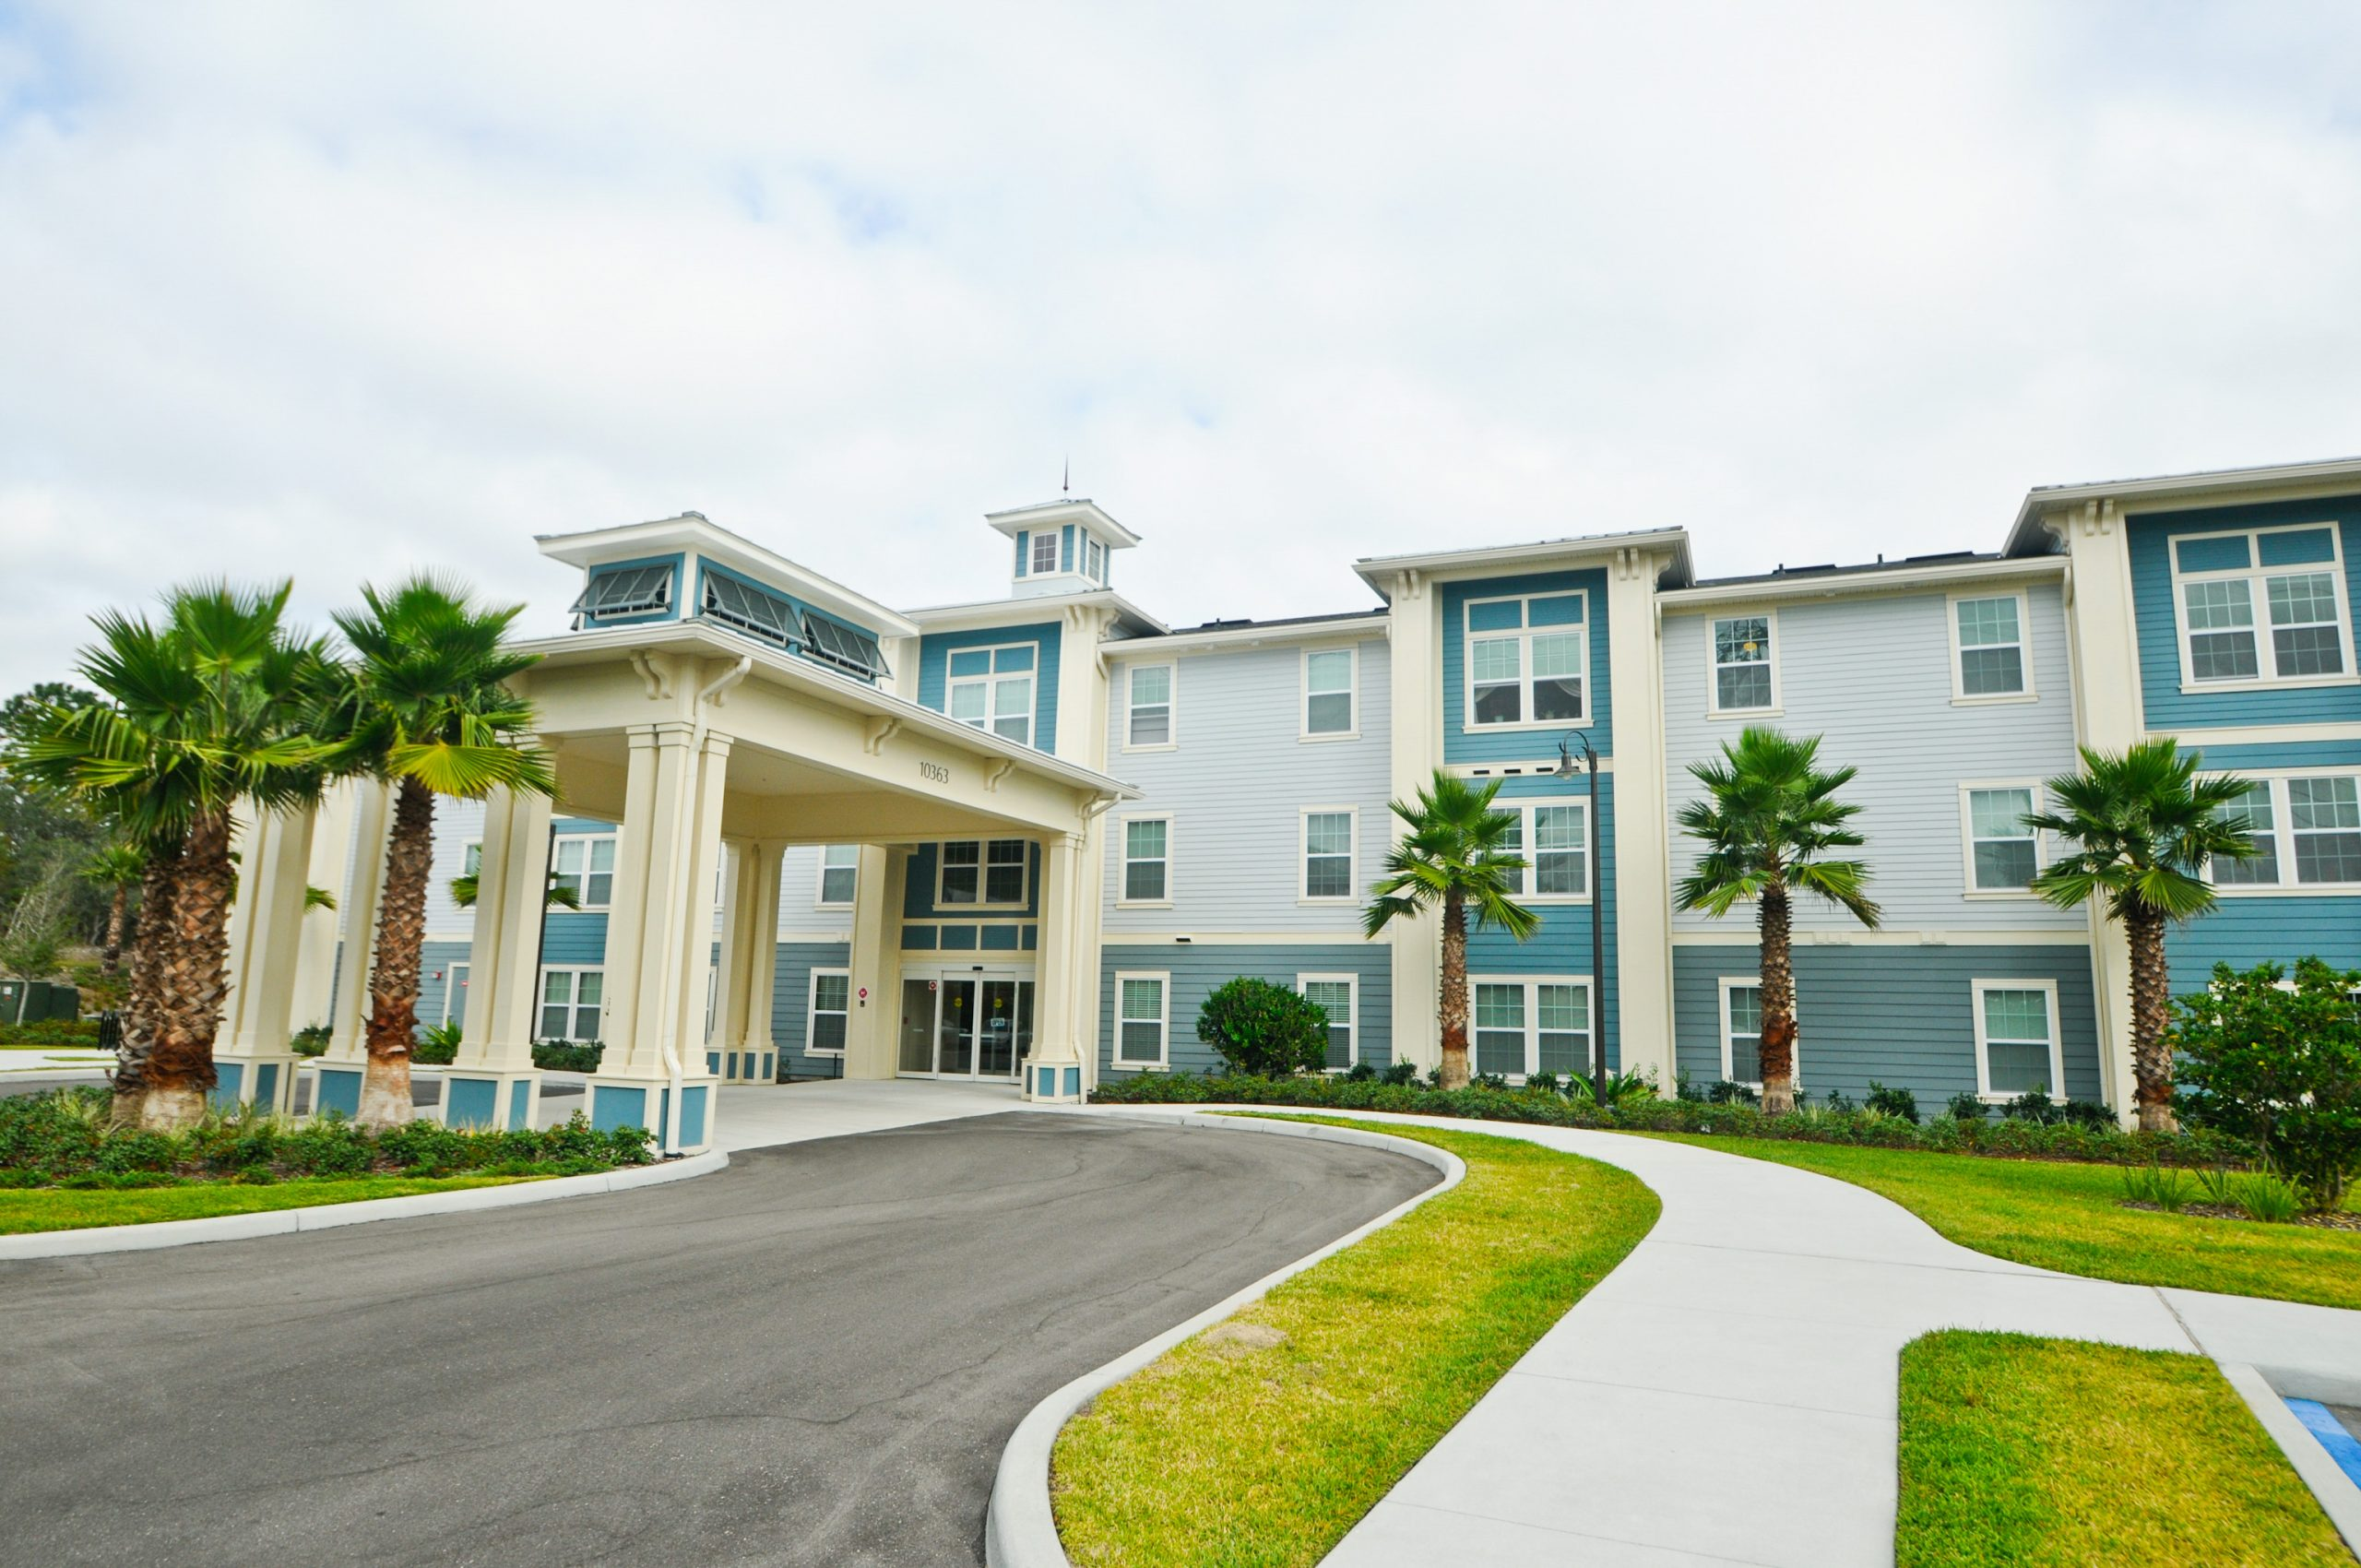 Senior living facility entrance in florida